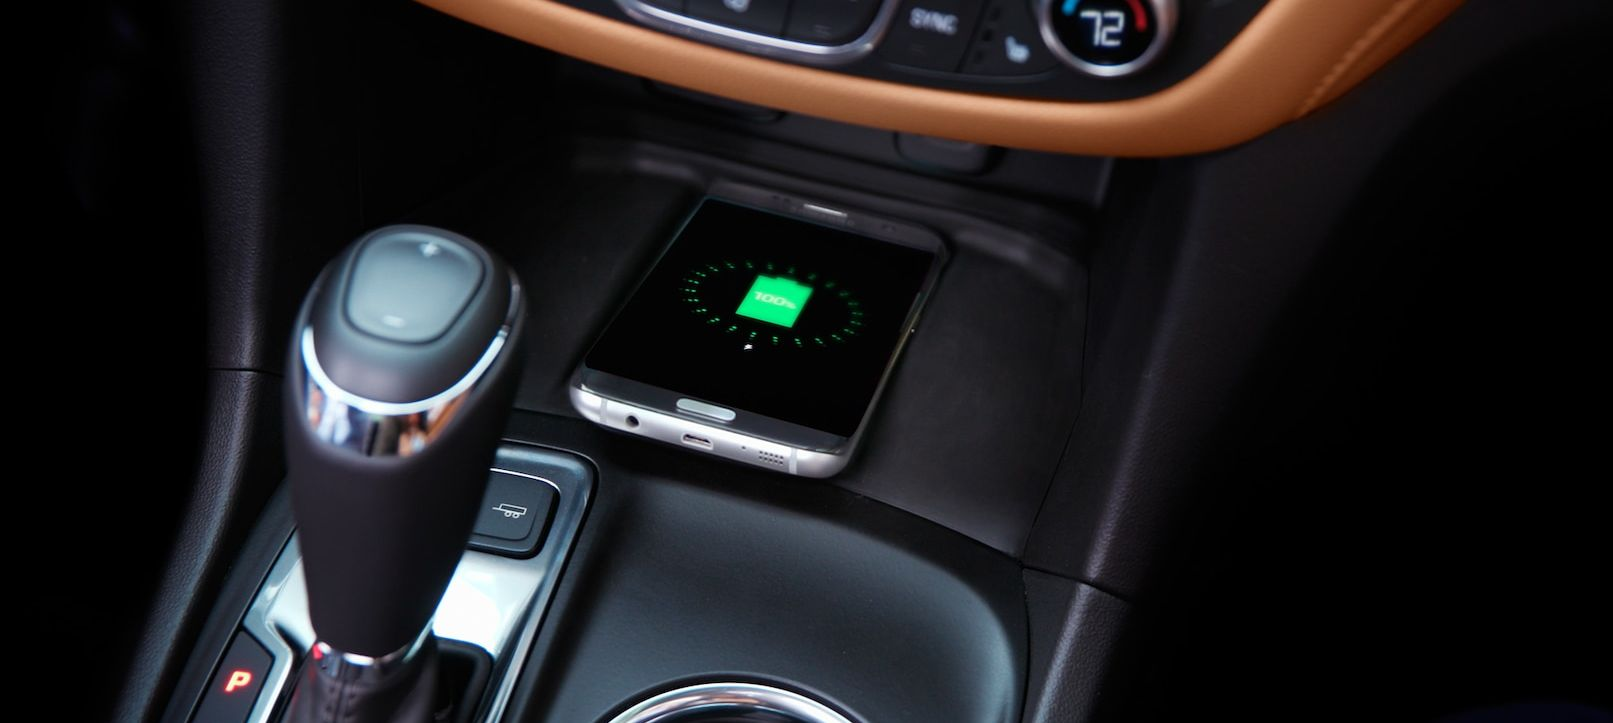 Wireless Charging in the Chevrolet Equinox